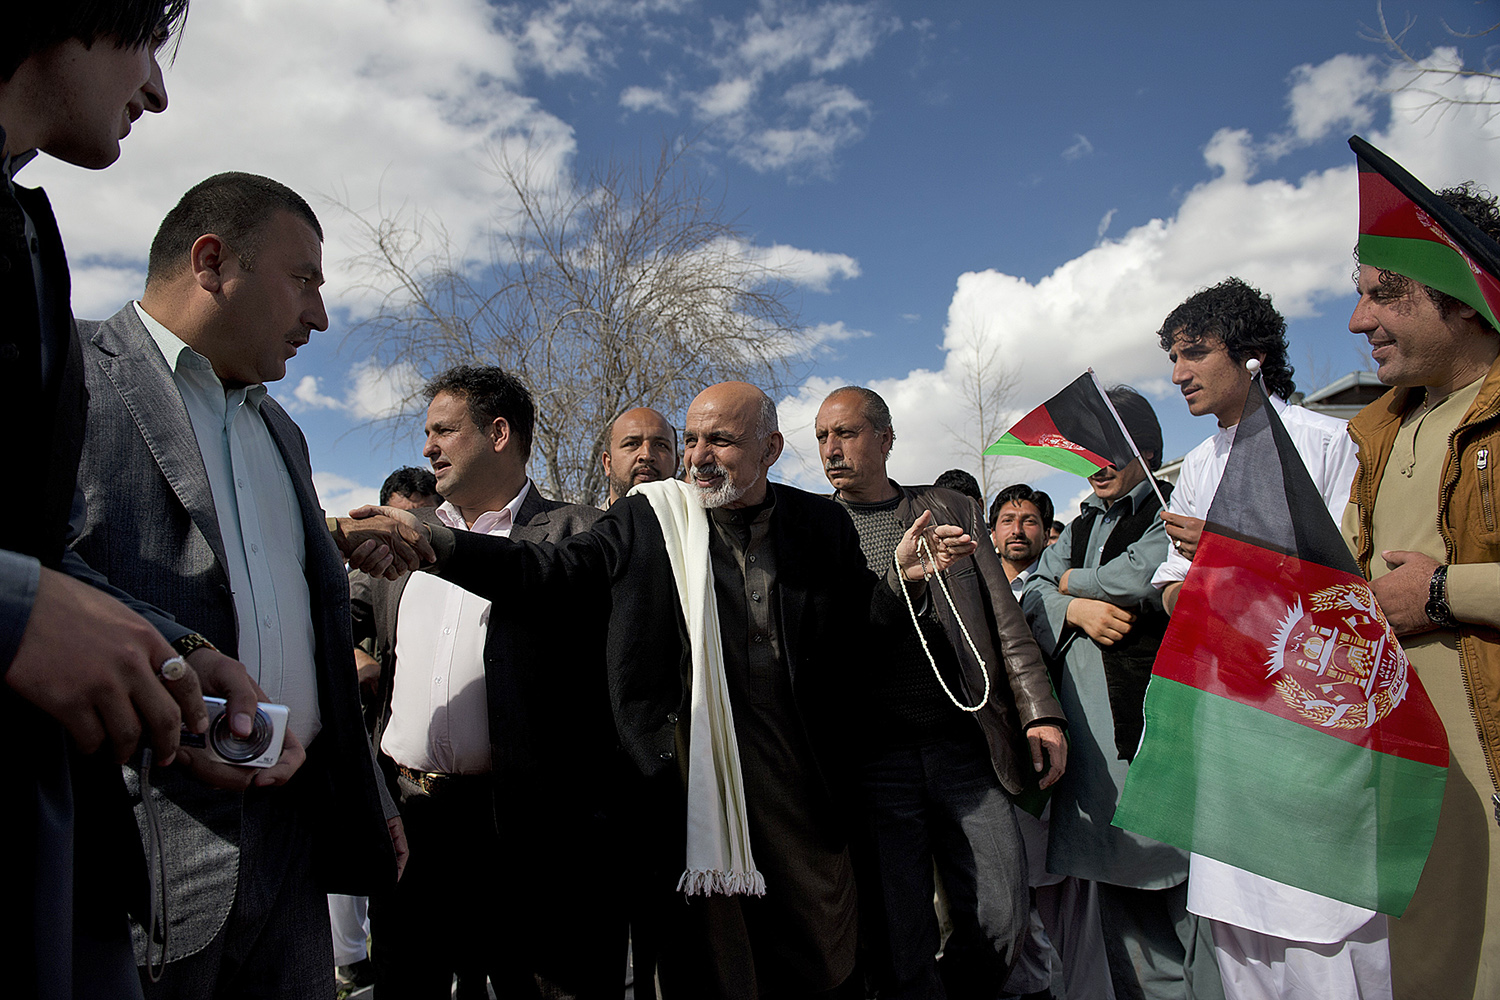 Afghan Presidential candidate Ashraf Ghani holds a rally in Kabul, Afghanistan, March 24, 2014.